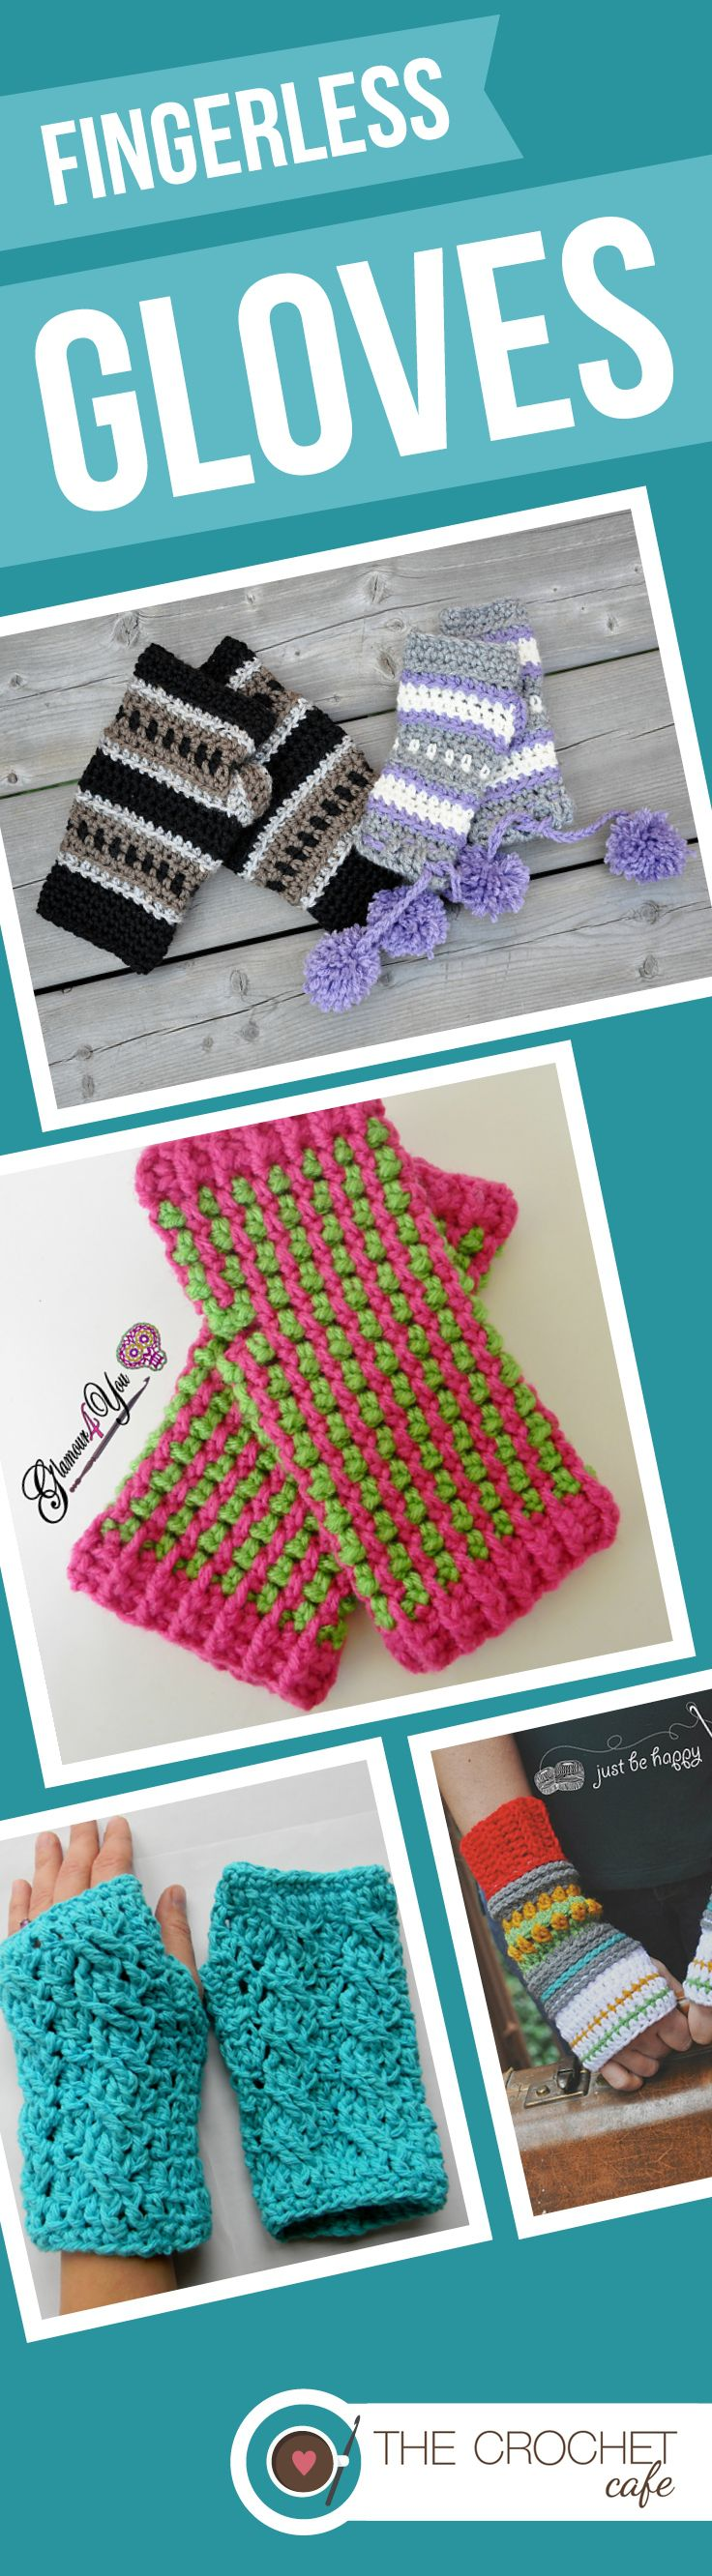 Must-Have crochet patterns for fingerless gloves and mitts from www.thecrochetcafe.com: